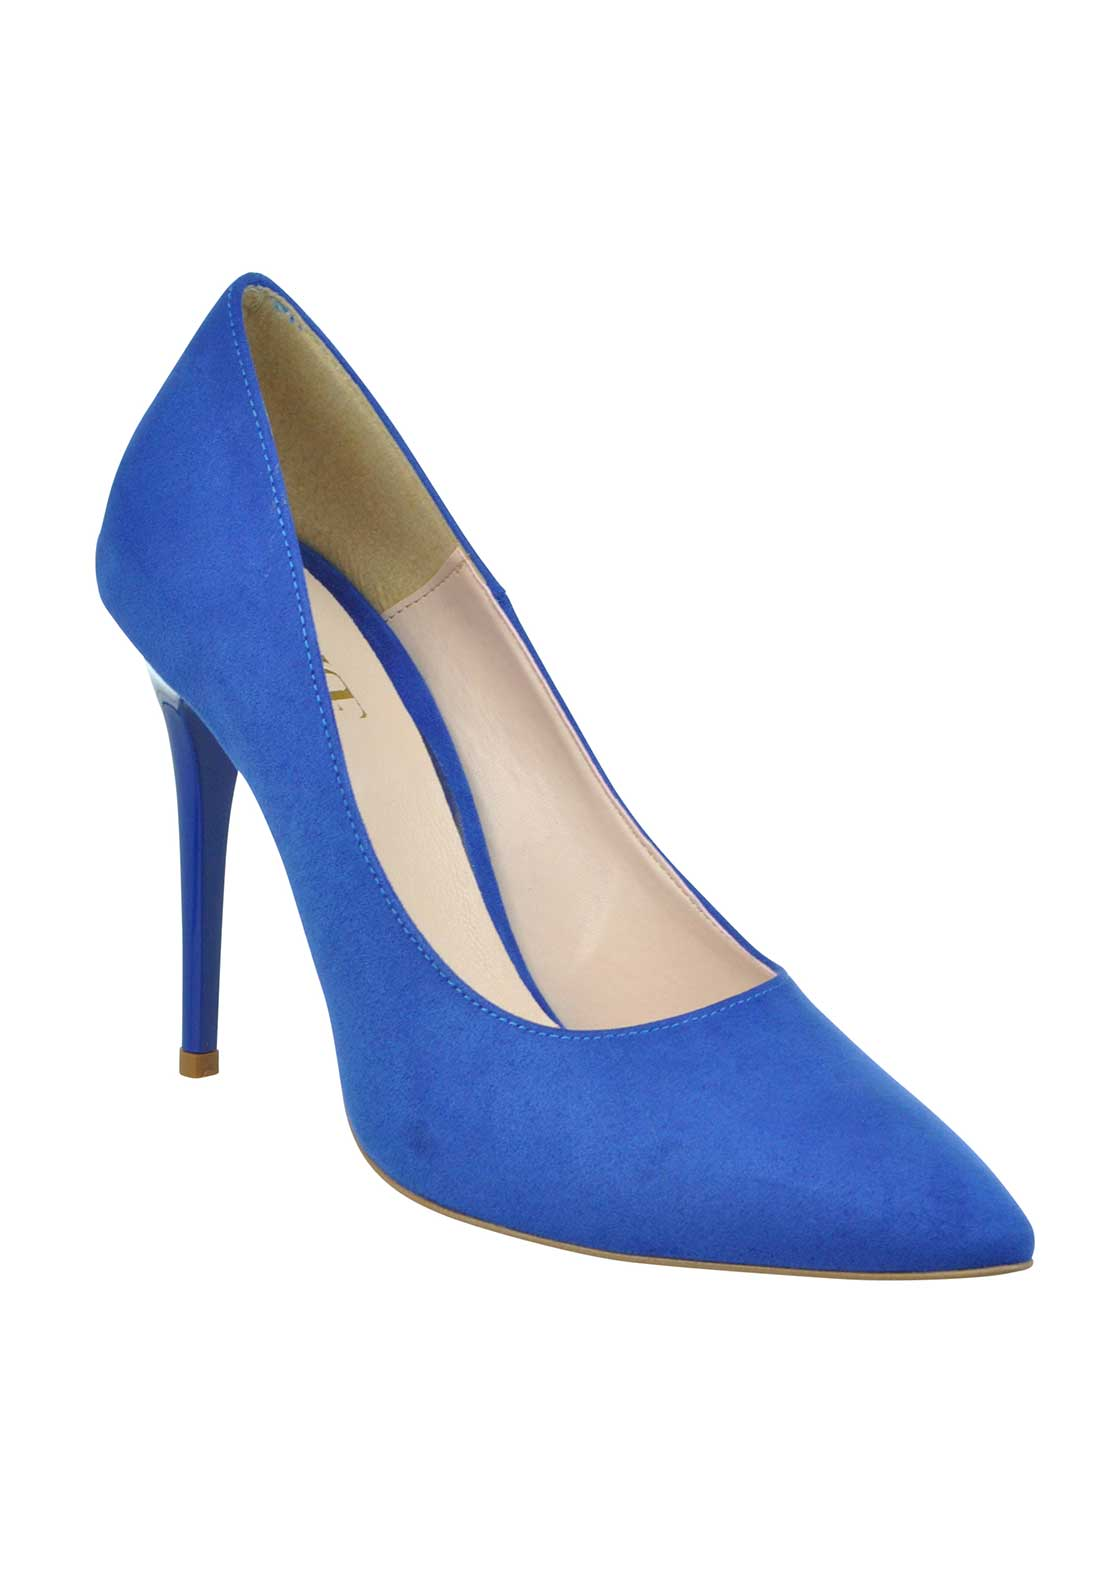 McElhinney's Faux Suede Pointed Toe Heeled Shoes, Blue